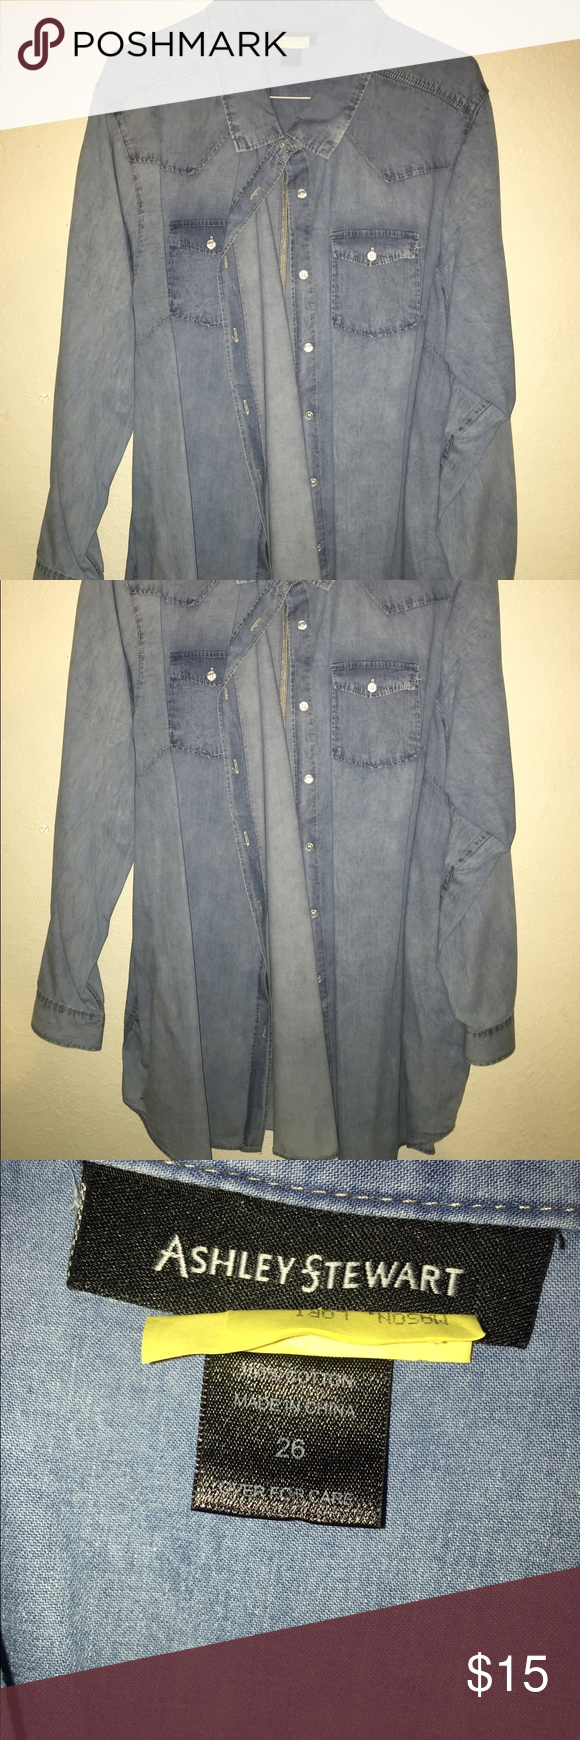 Peplum Denim Shirt Ashley Stewart  size 26 Denim peplum jacket. Worn once. Dry cleaned. Ashley Stewart Tops Button Down Shirts